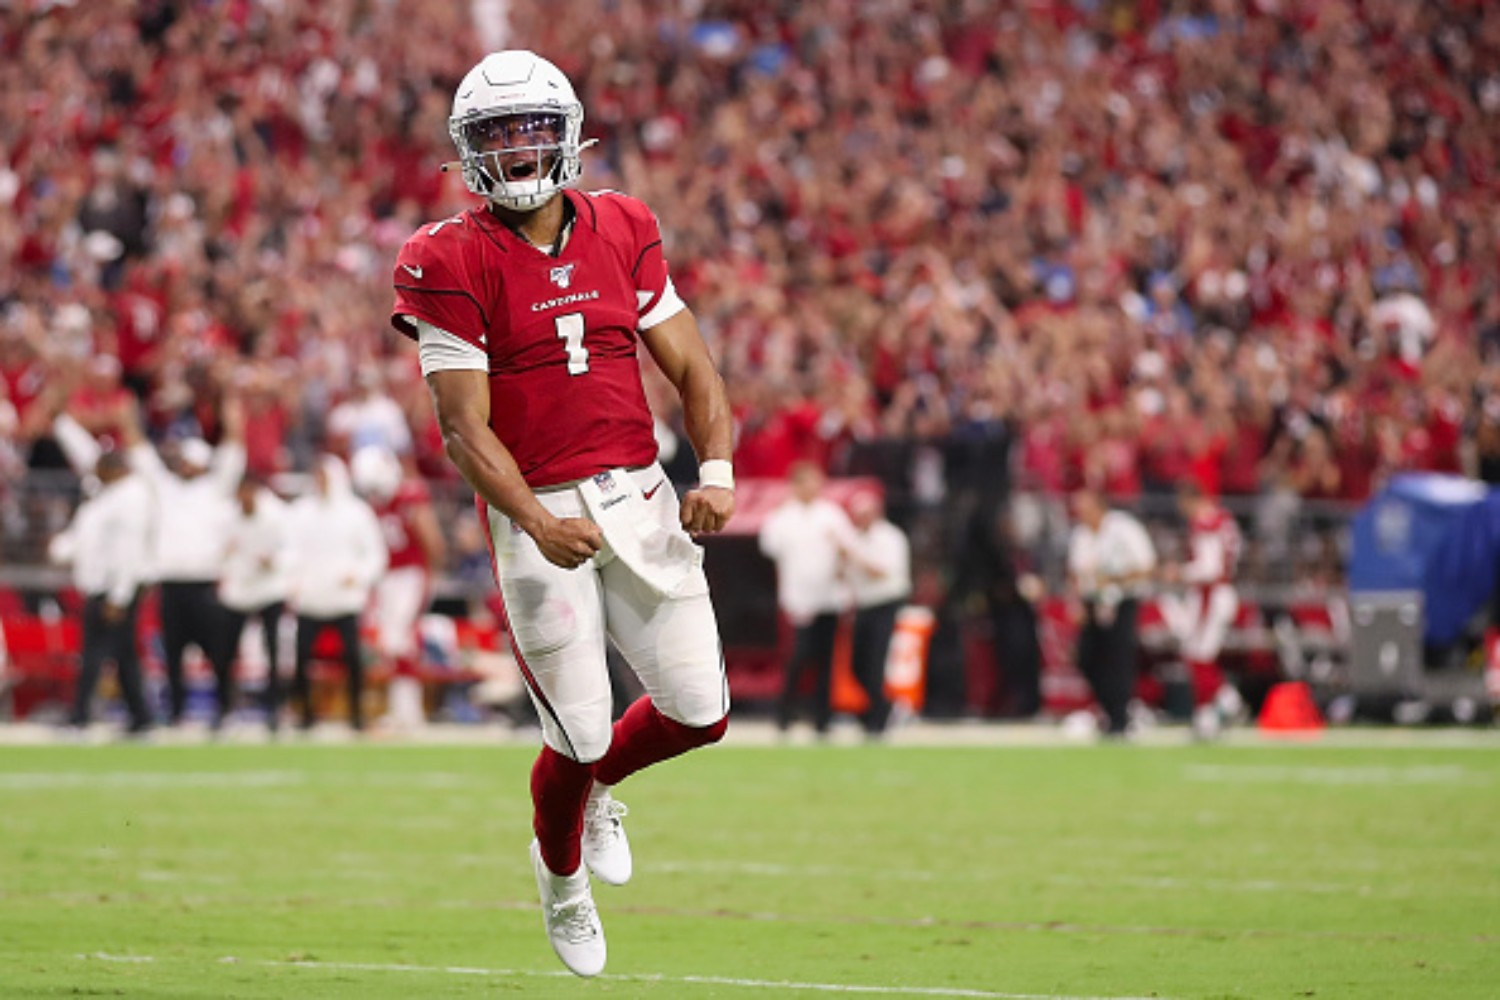 Kyler Murray's Impressive Stat Shows Why He Has the Potential to Be a Star